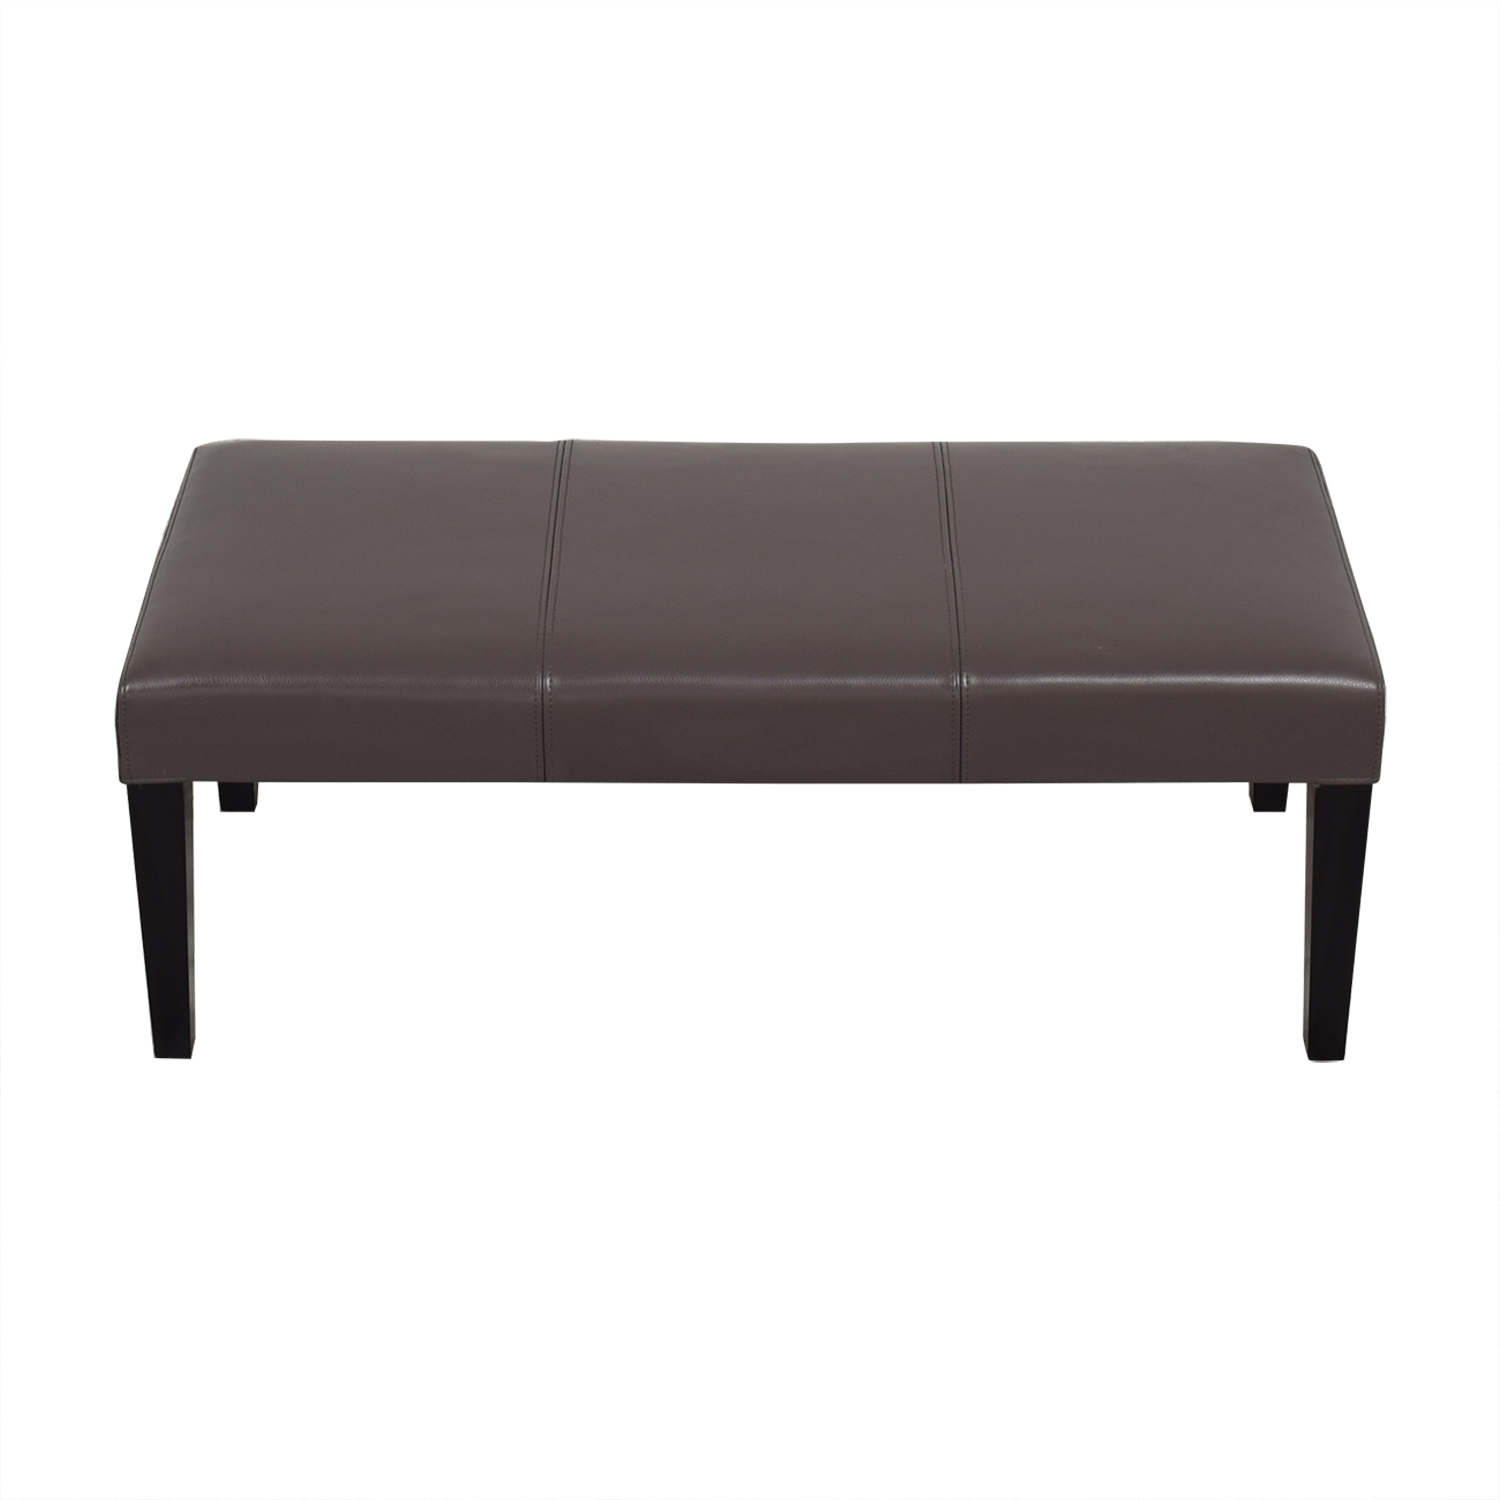 buy Crate & Barrel Crate & Barrel Lowe Backless Bench online